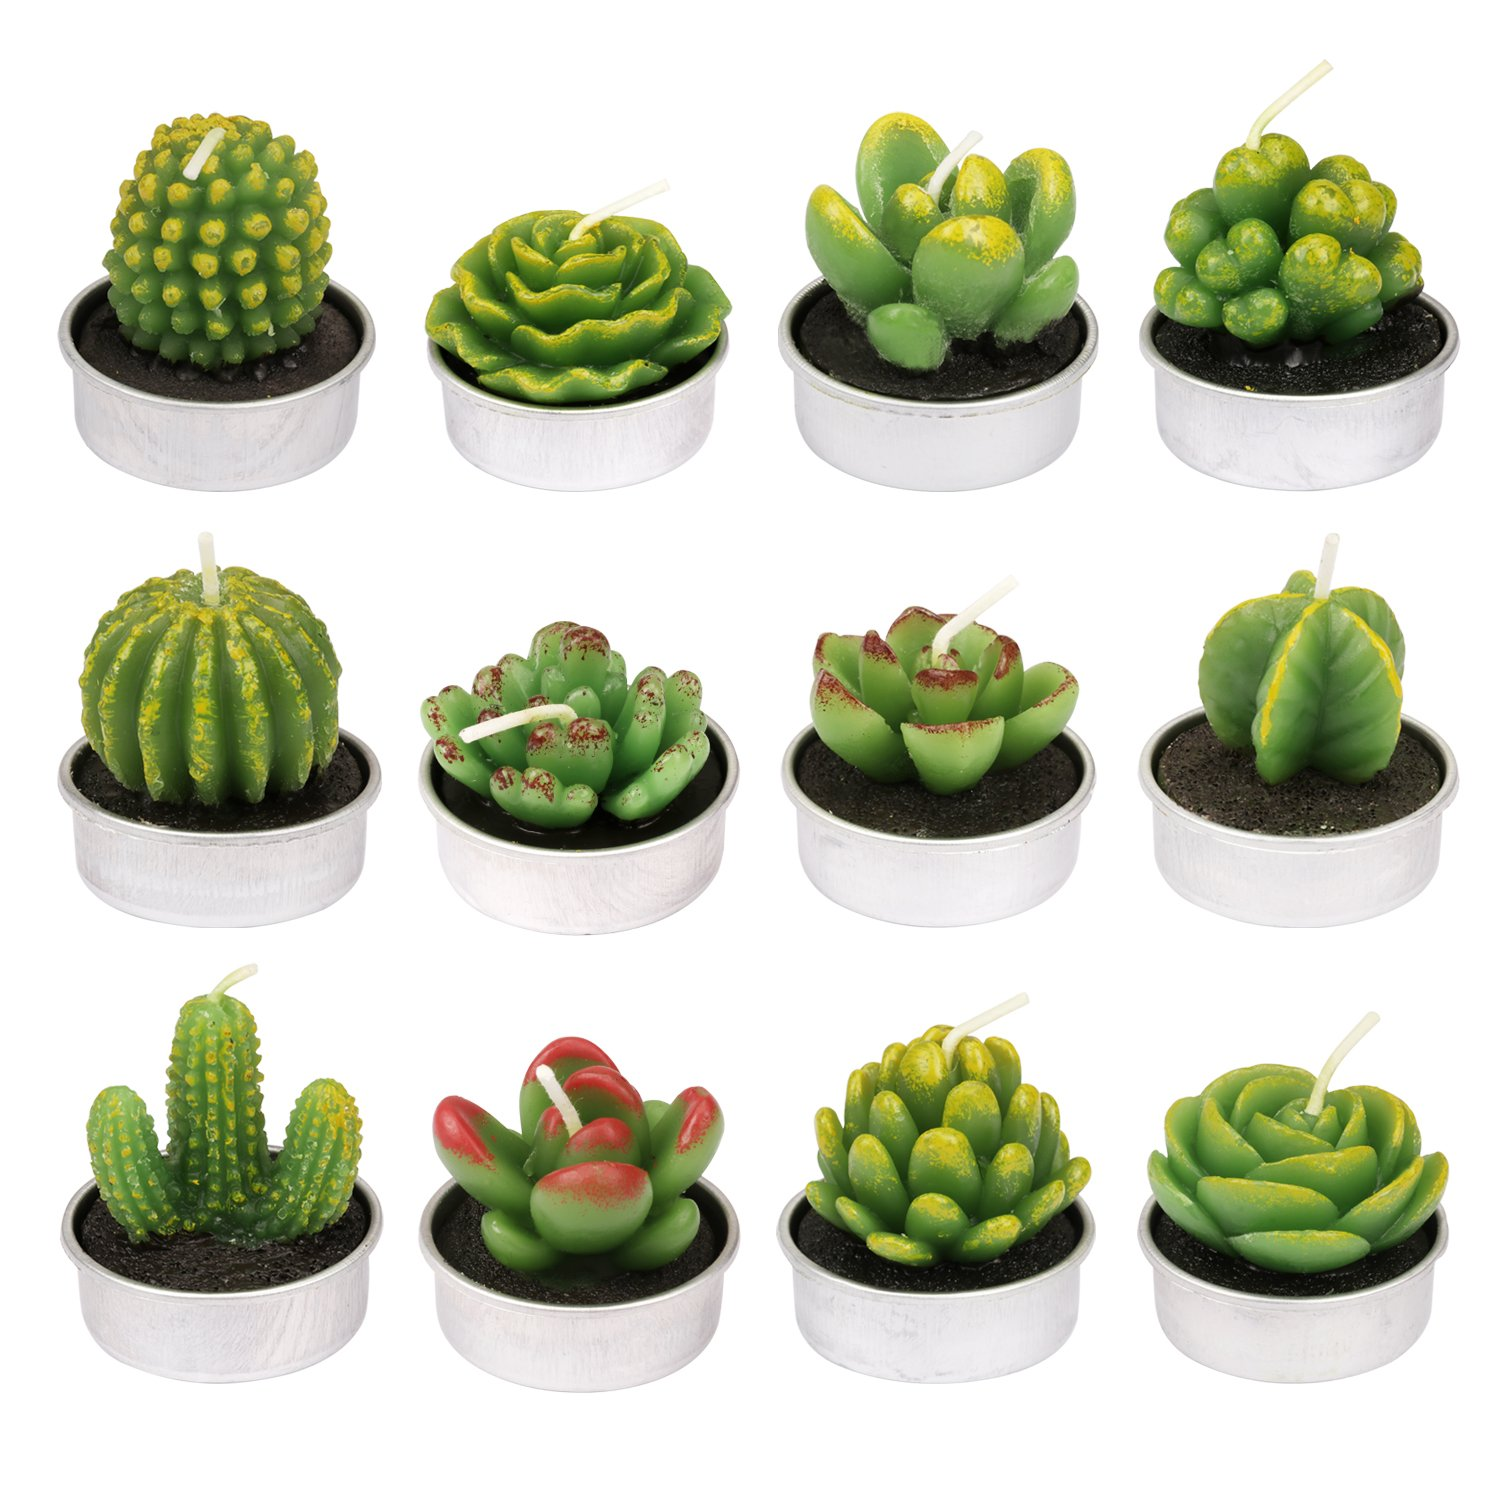 Whavel Cactus Tealight Candles 12 Pcs Handmade Tealight Candles Cactus Candles for Party Wedding Spa Home Decoration Candle Light Dinner Gifts (Model 3) by Whavel